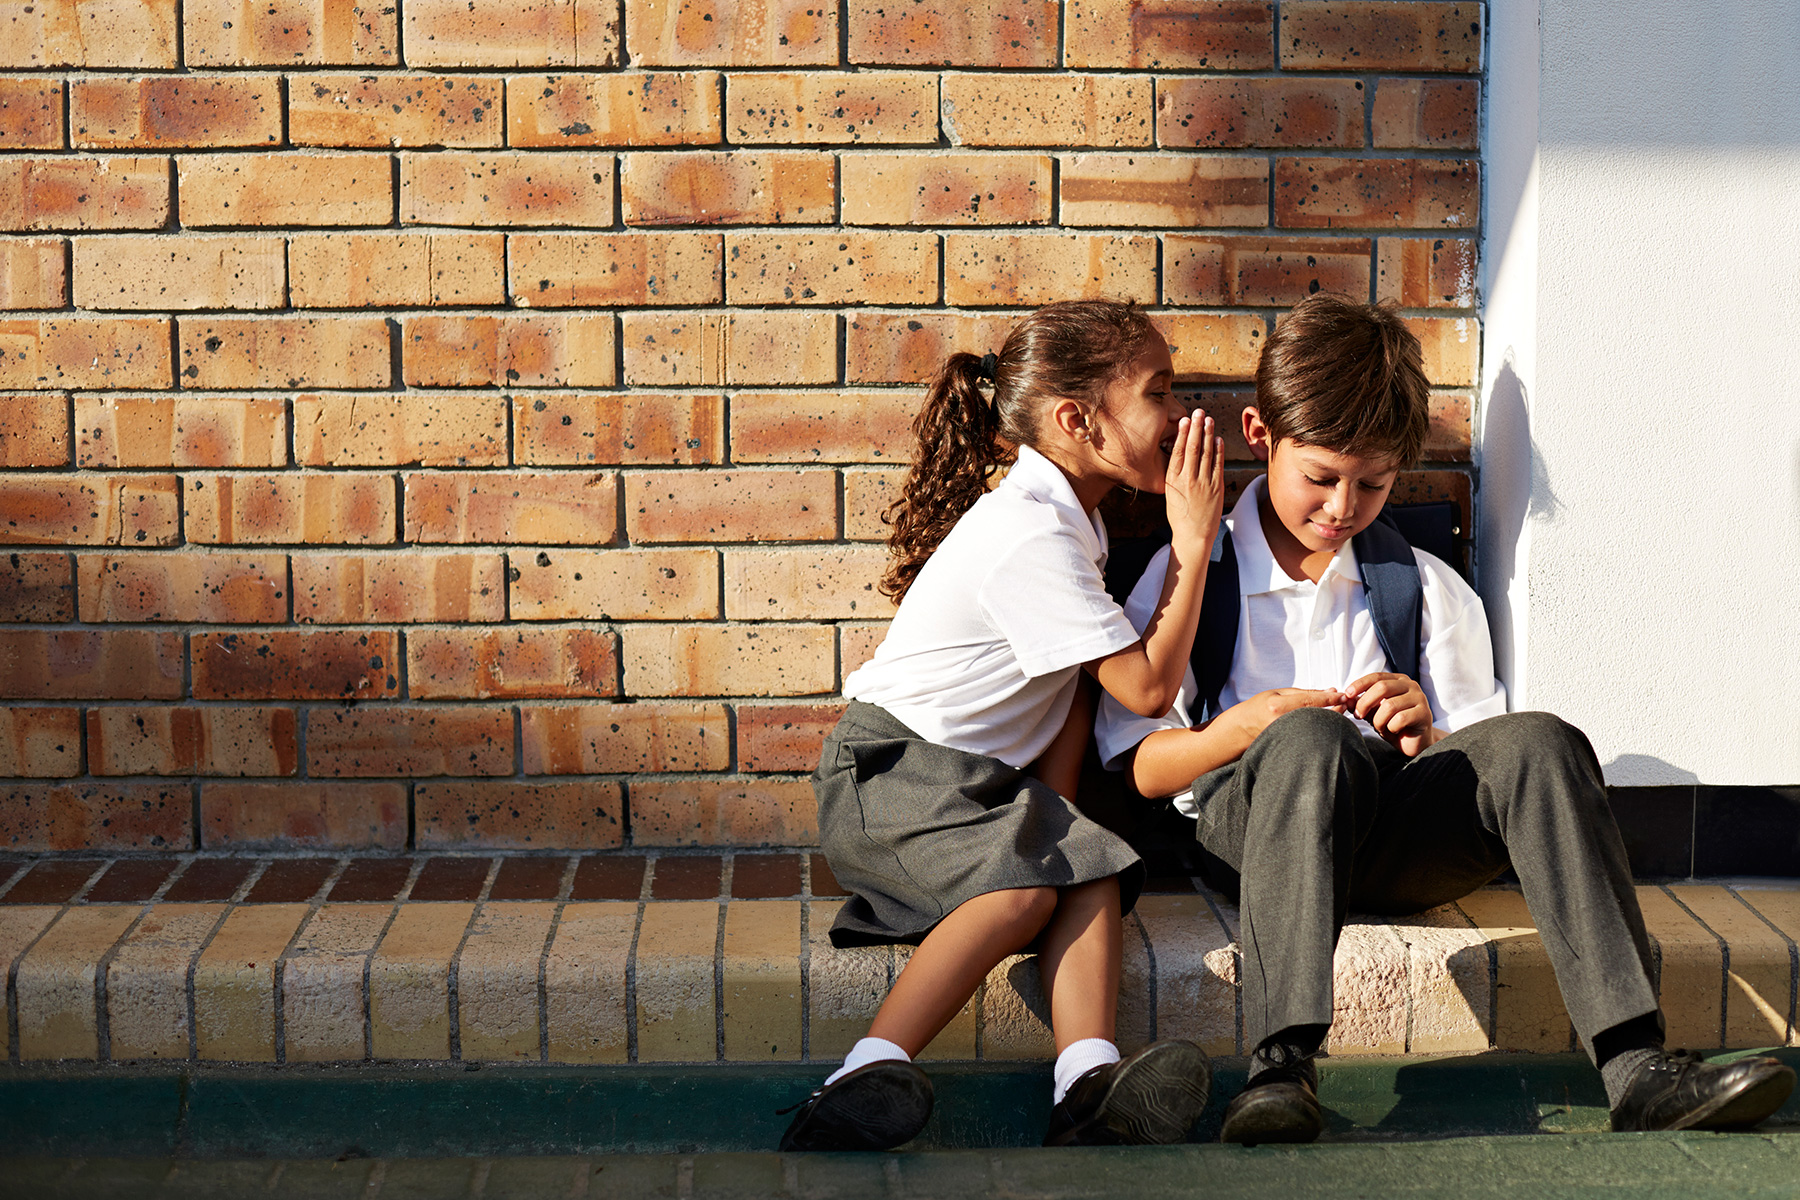 School girl whispering in friends ear in schoolyard